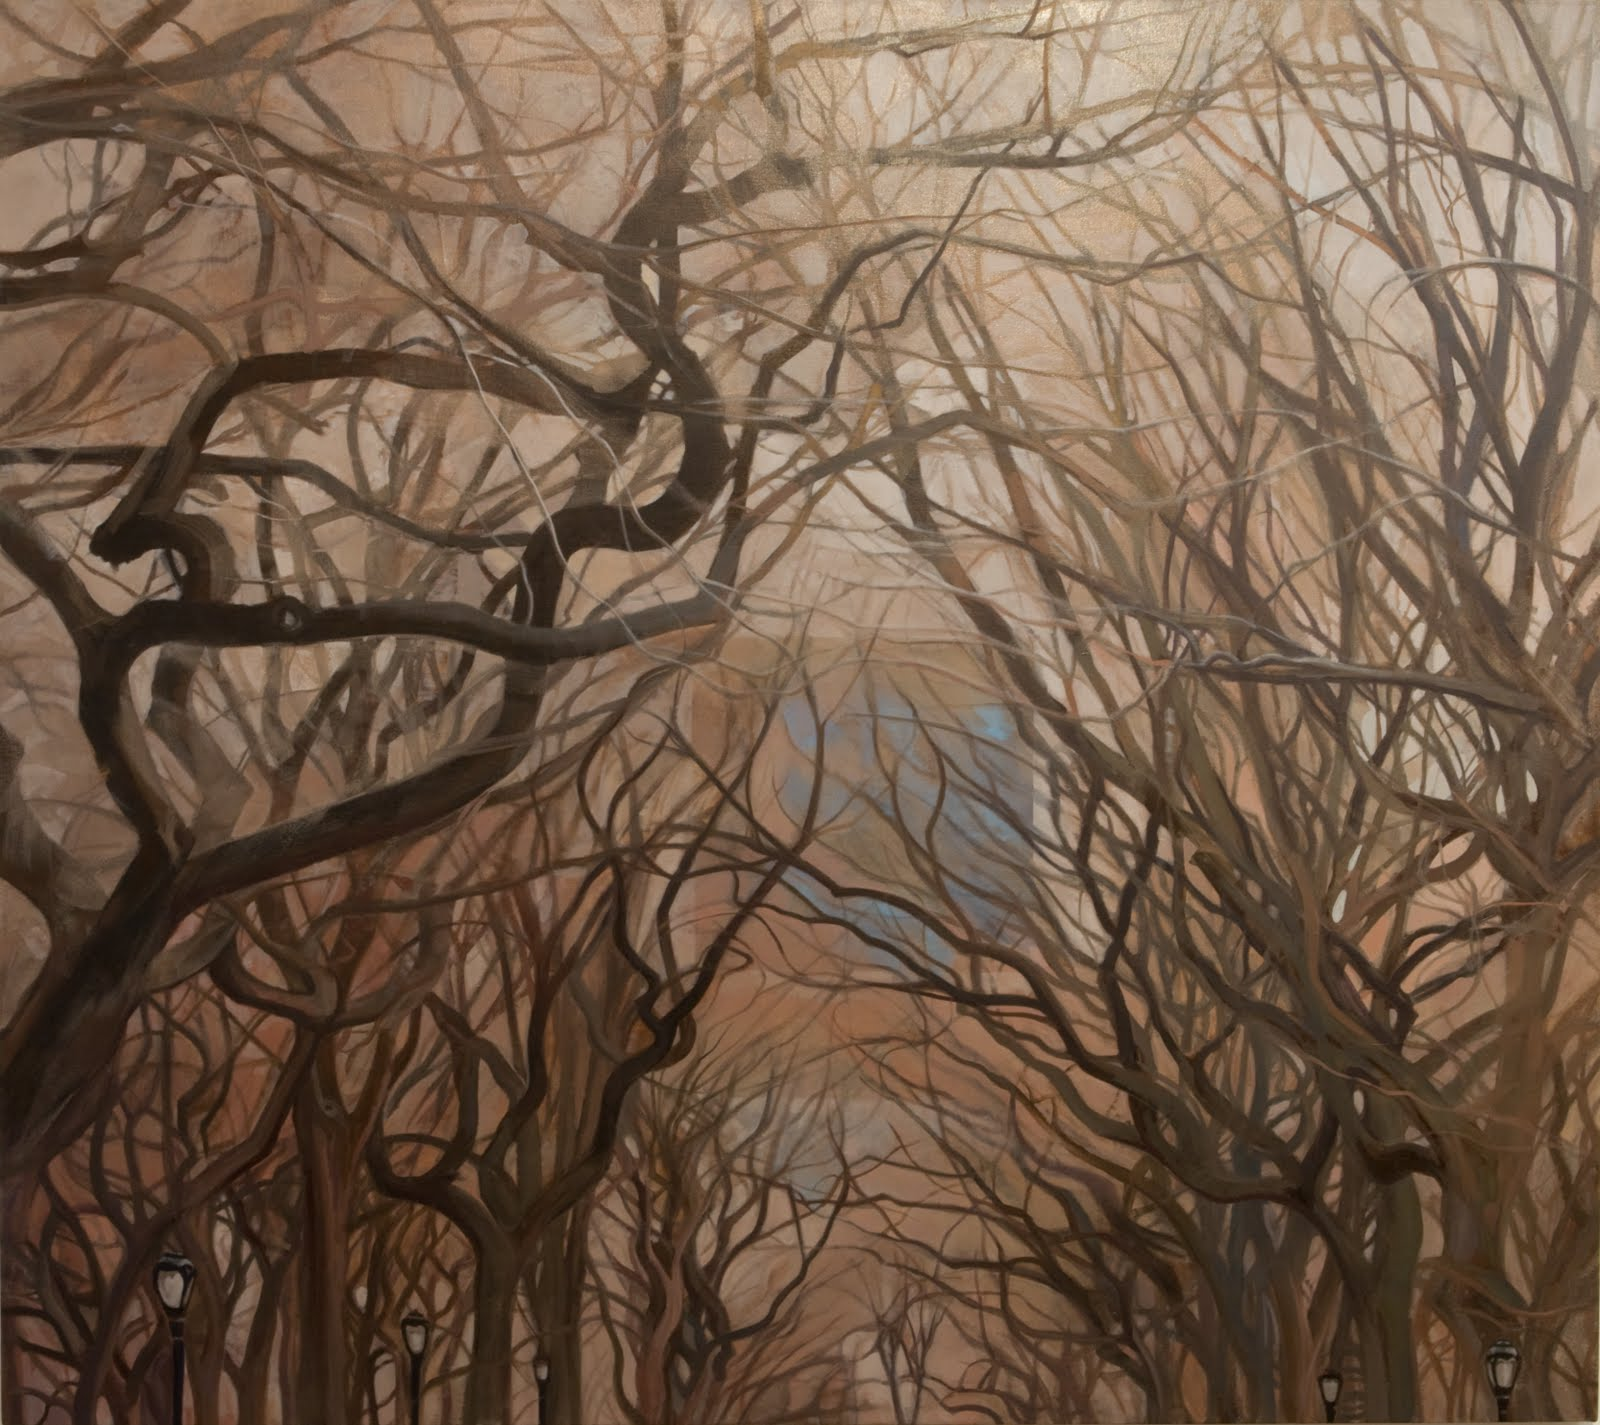 """""""Overcast Mall, Central Park"""", oil on linen, 48 x 54 x 2.5 in."""